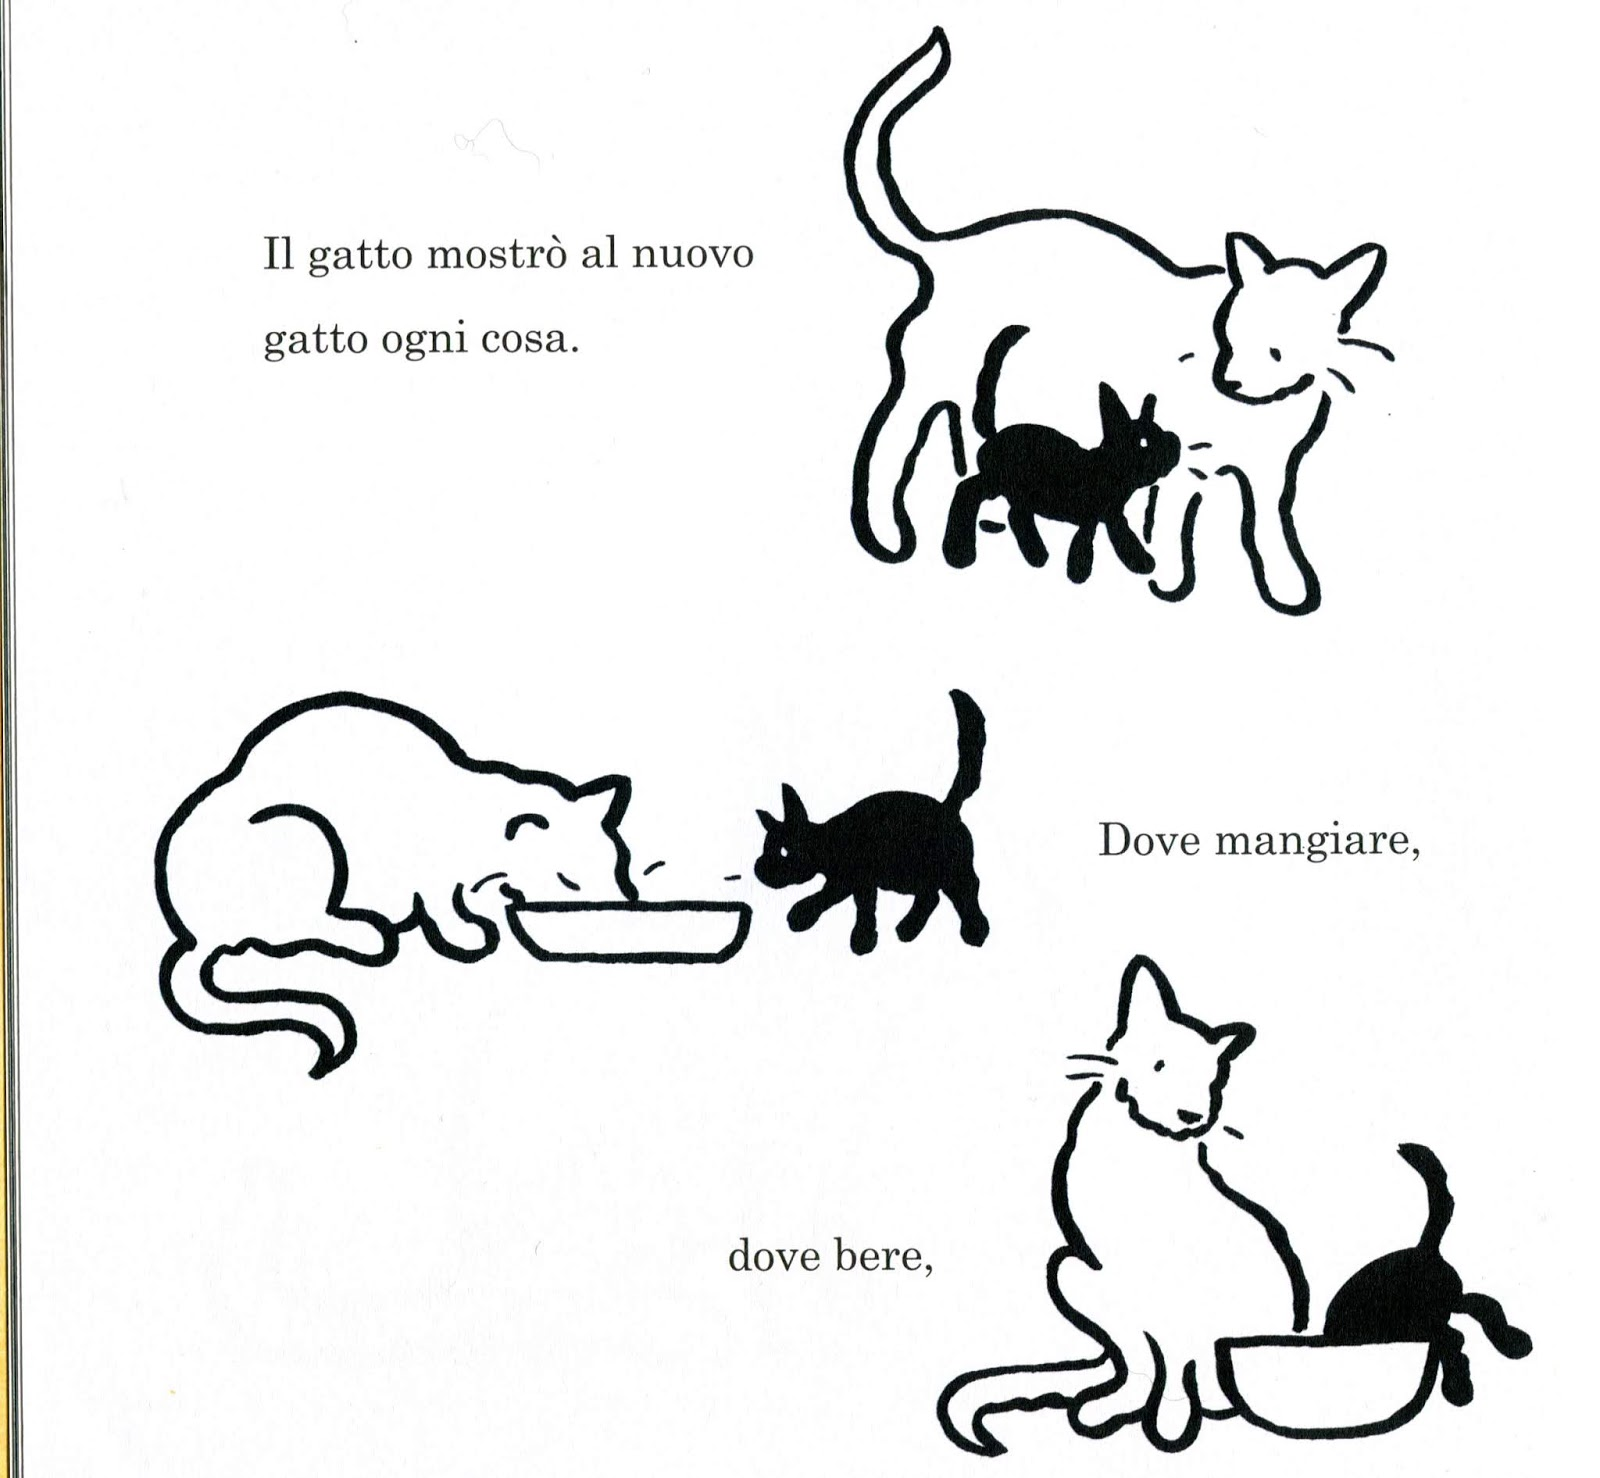 Pussys a stretto